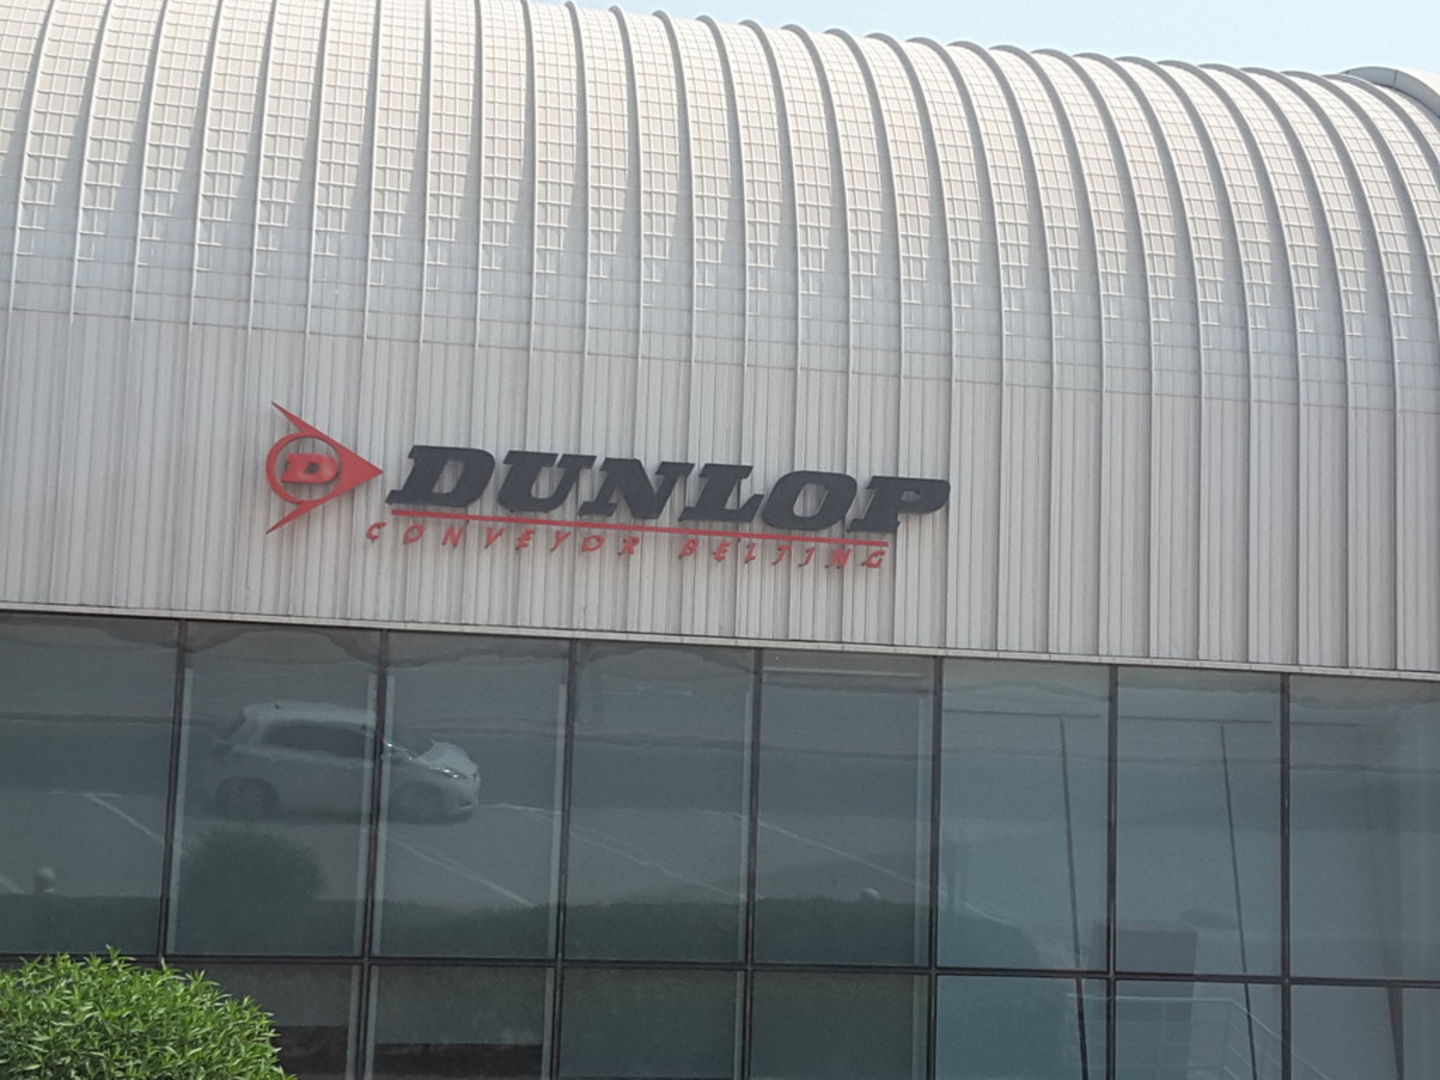 HiDubai-business-dunlop-conveyor-belting-transport-vehicle-services-specialized-auto-services-jebel-ali-industrial-2-dubai-2